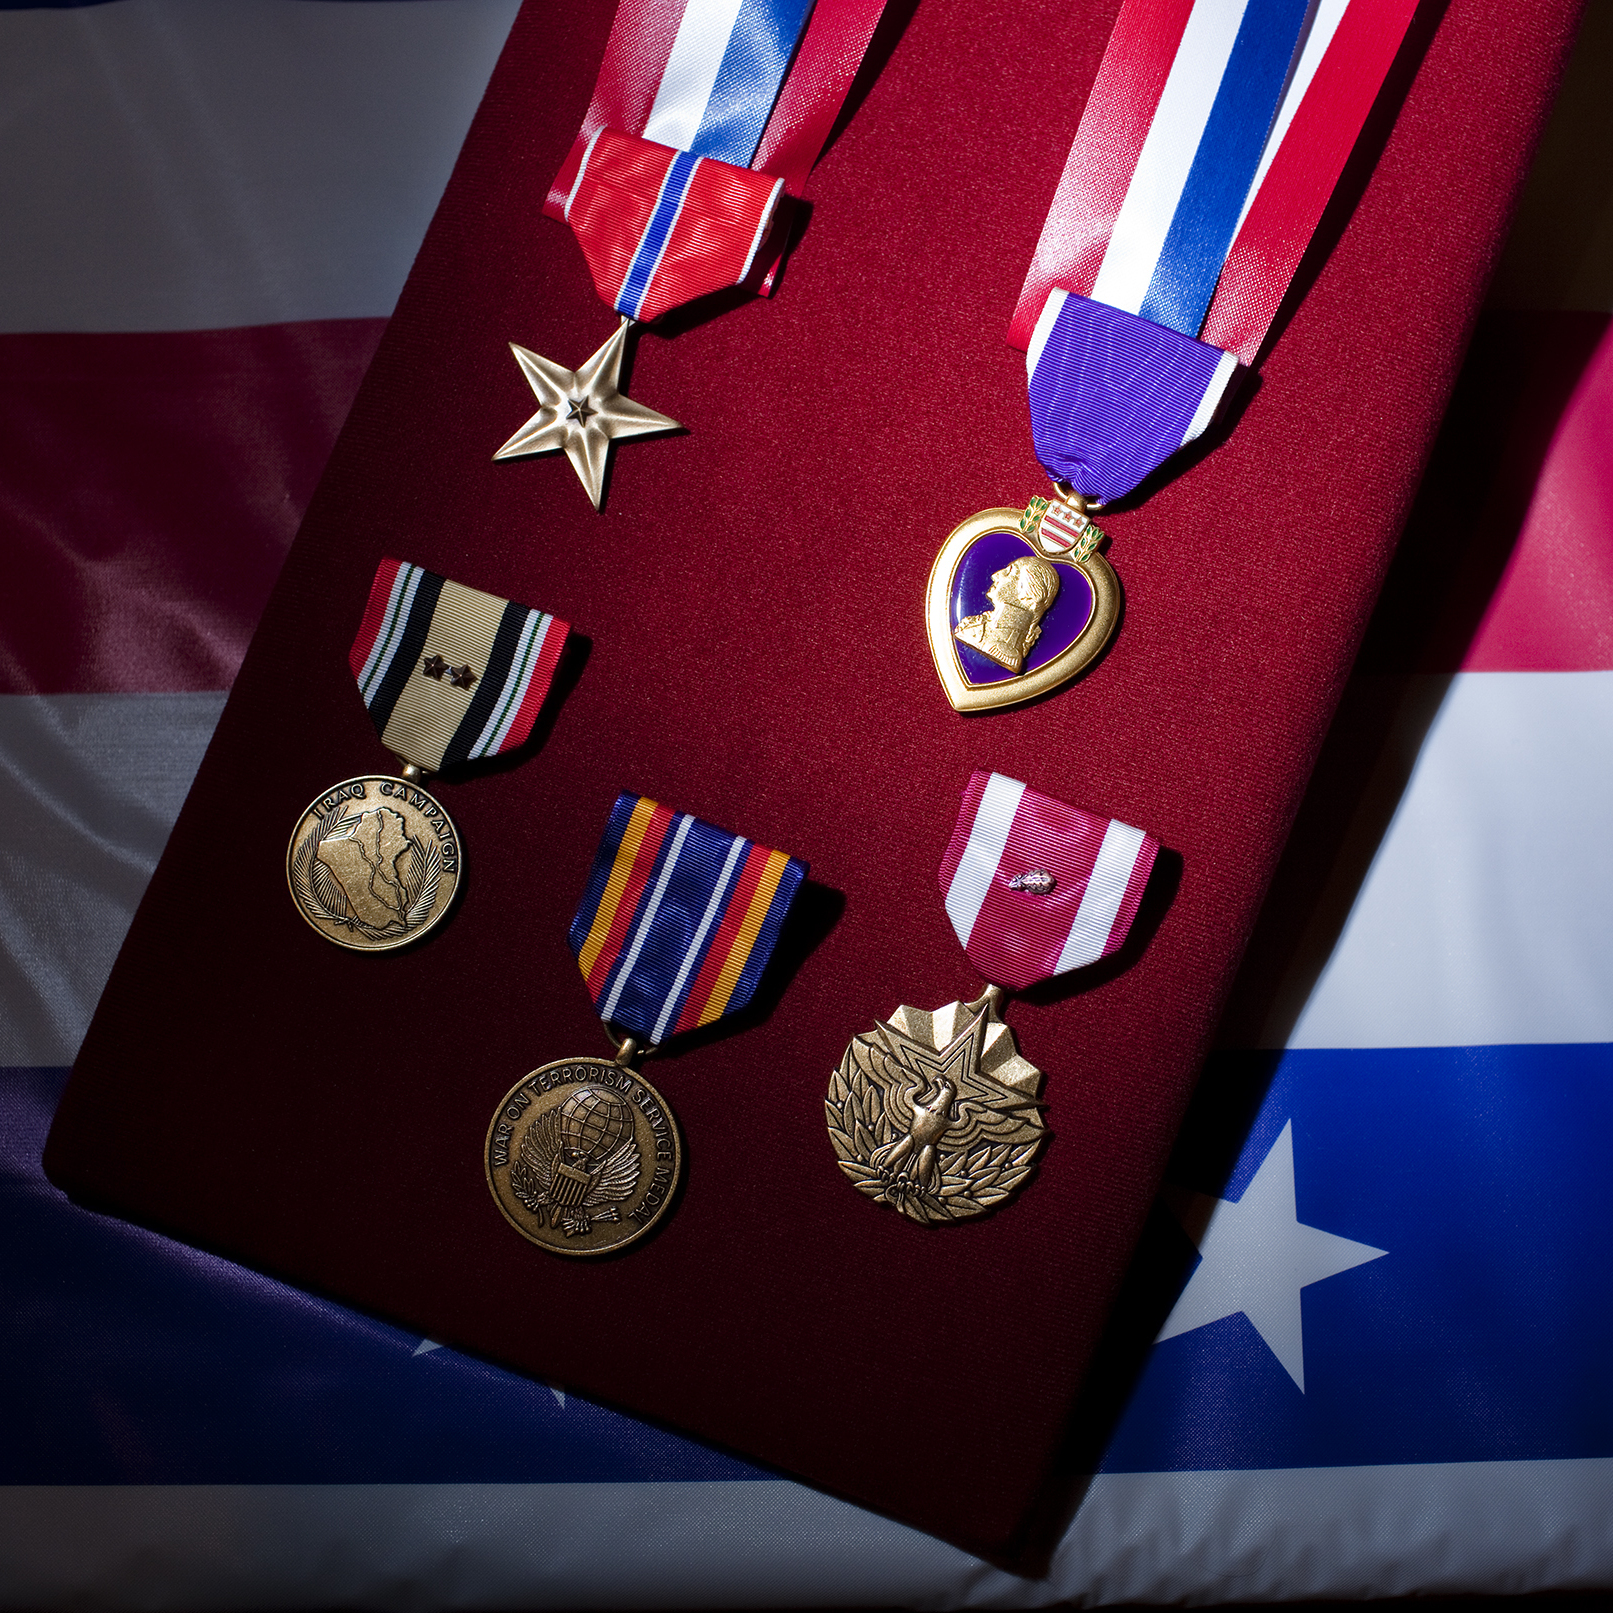 Dyarman's Army medals include a Purple Heart, Bronze Star and a service award for more than 26 years in the Army.